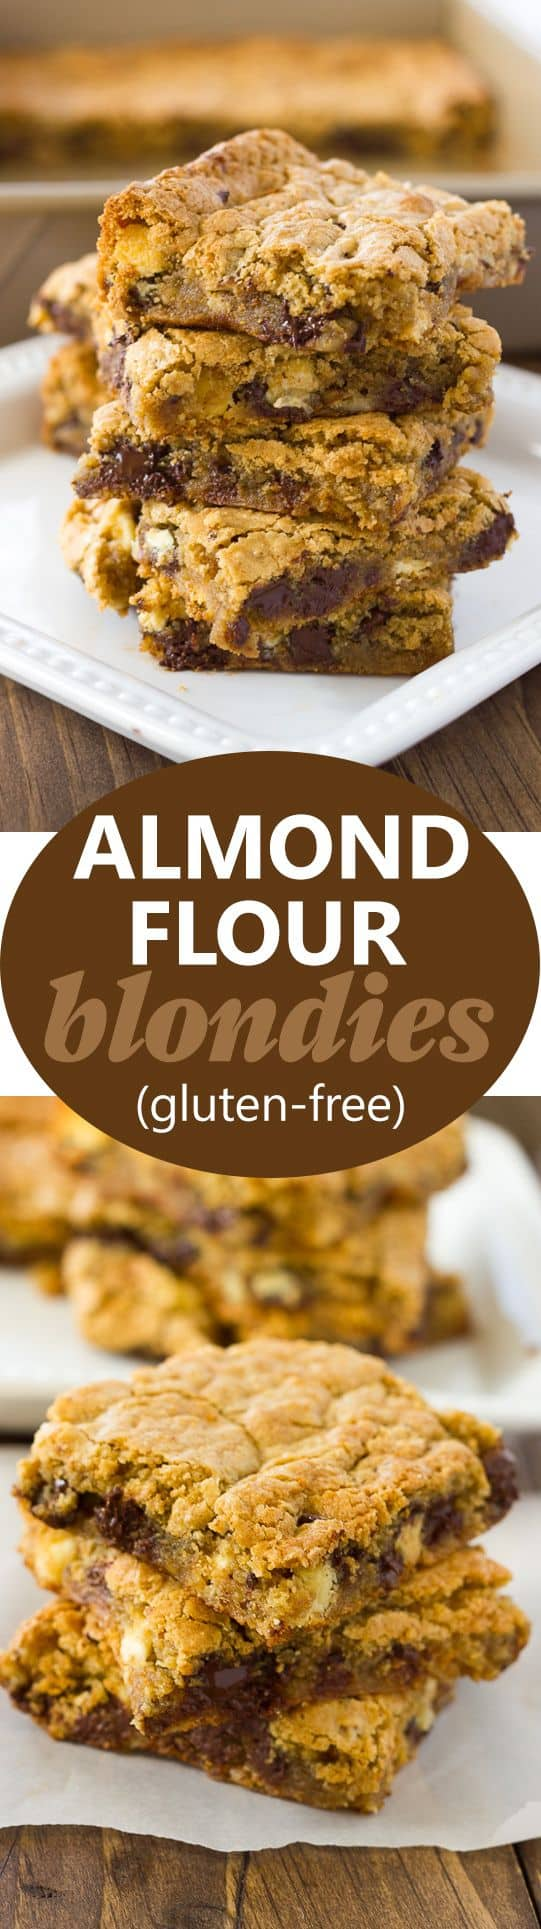 image for pinterest of almond flour blondies stacked on white plate